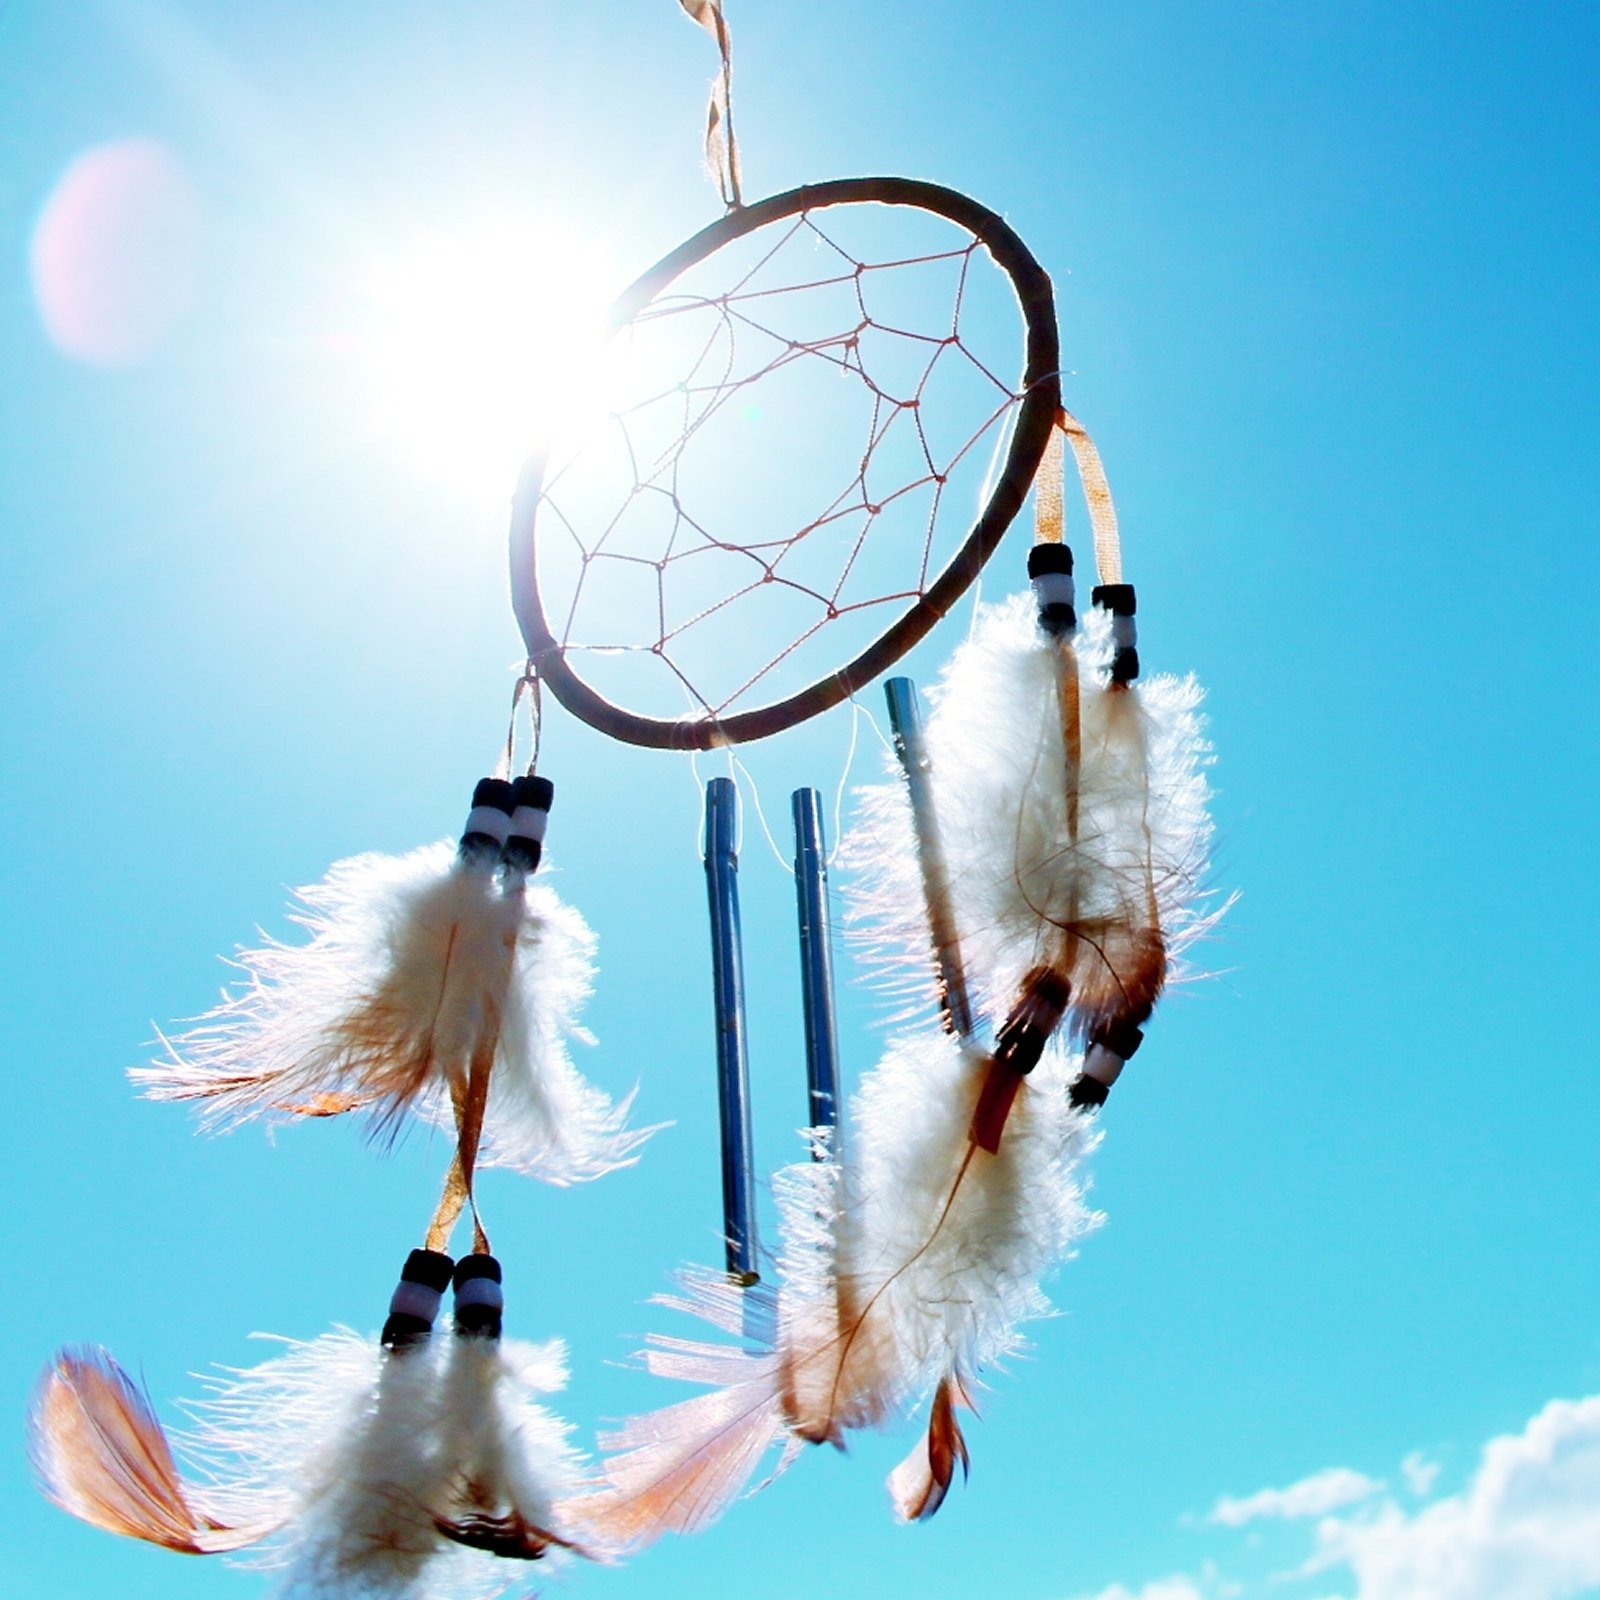 Photo of a dream catcher with a blue sky background.